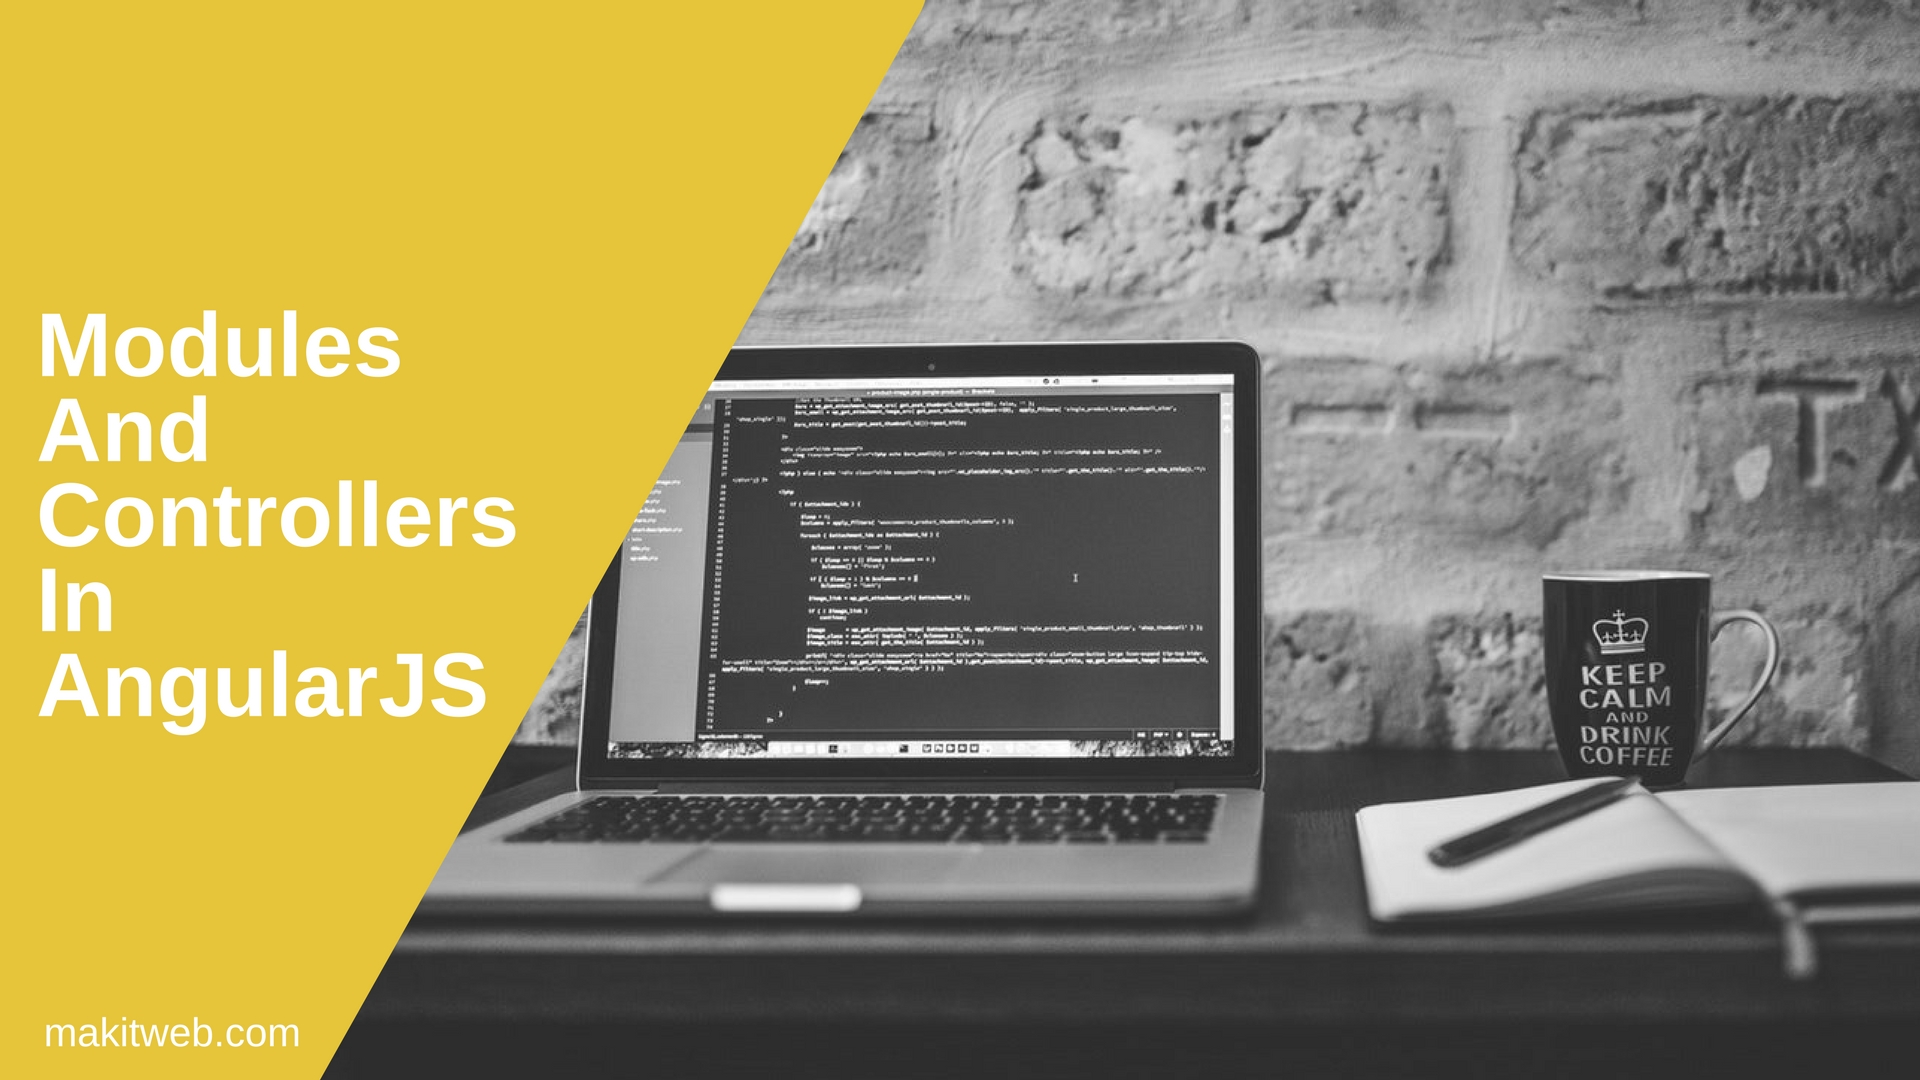 Modules and Controllers in AngularJS